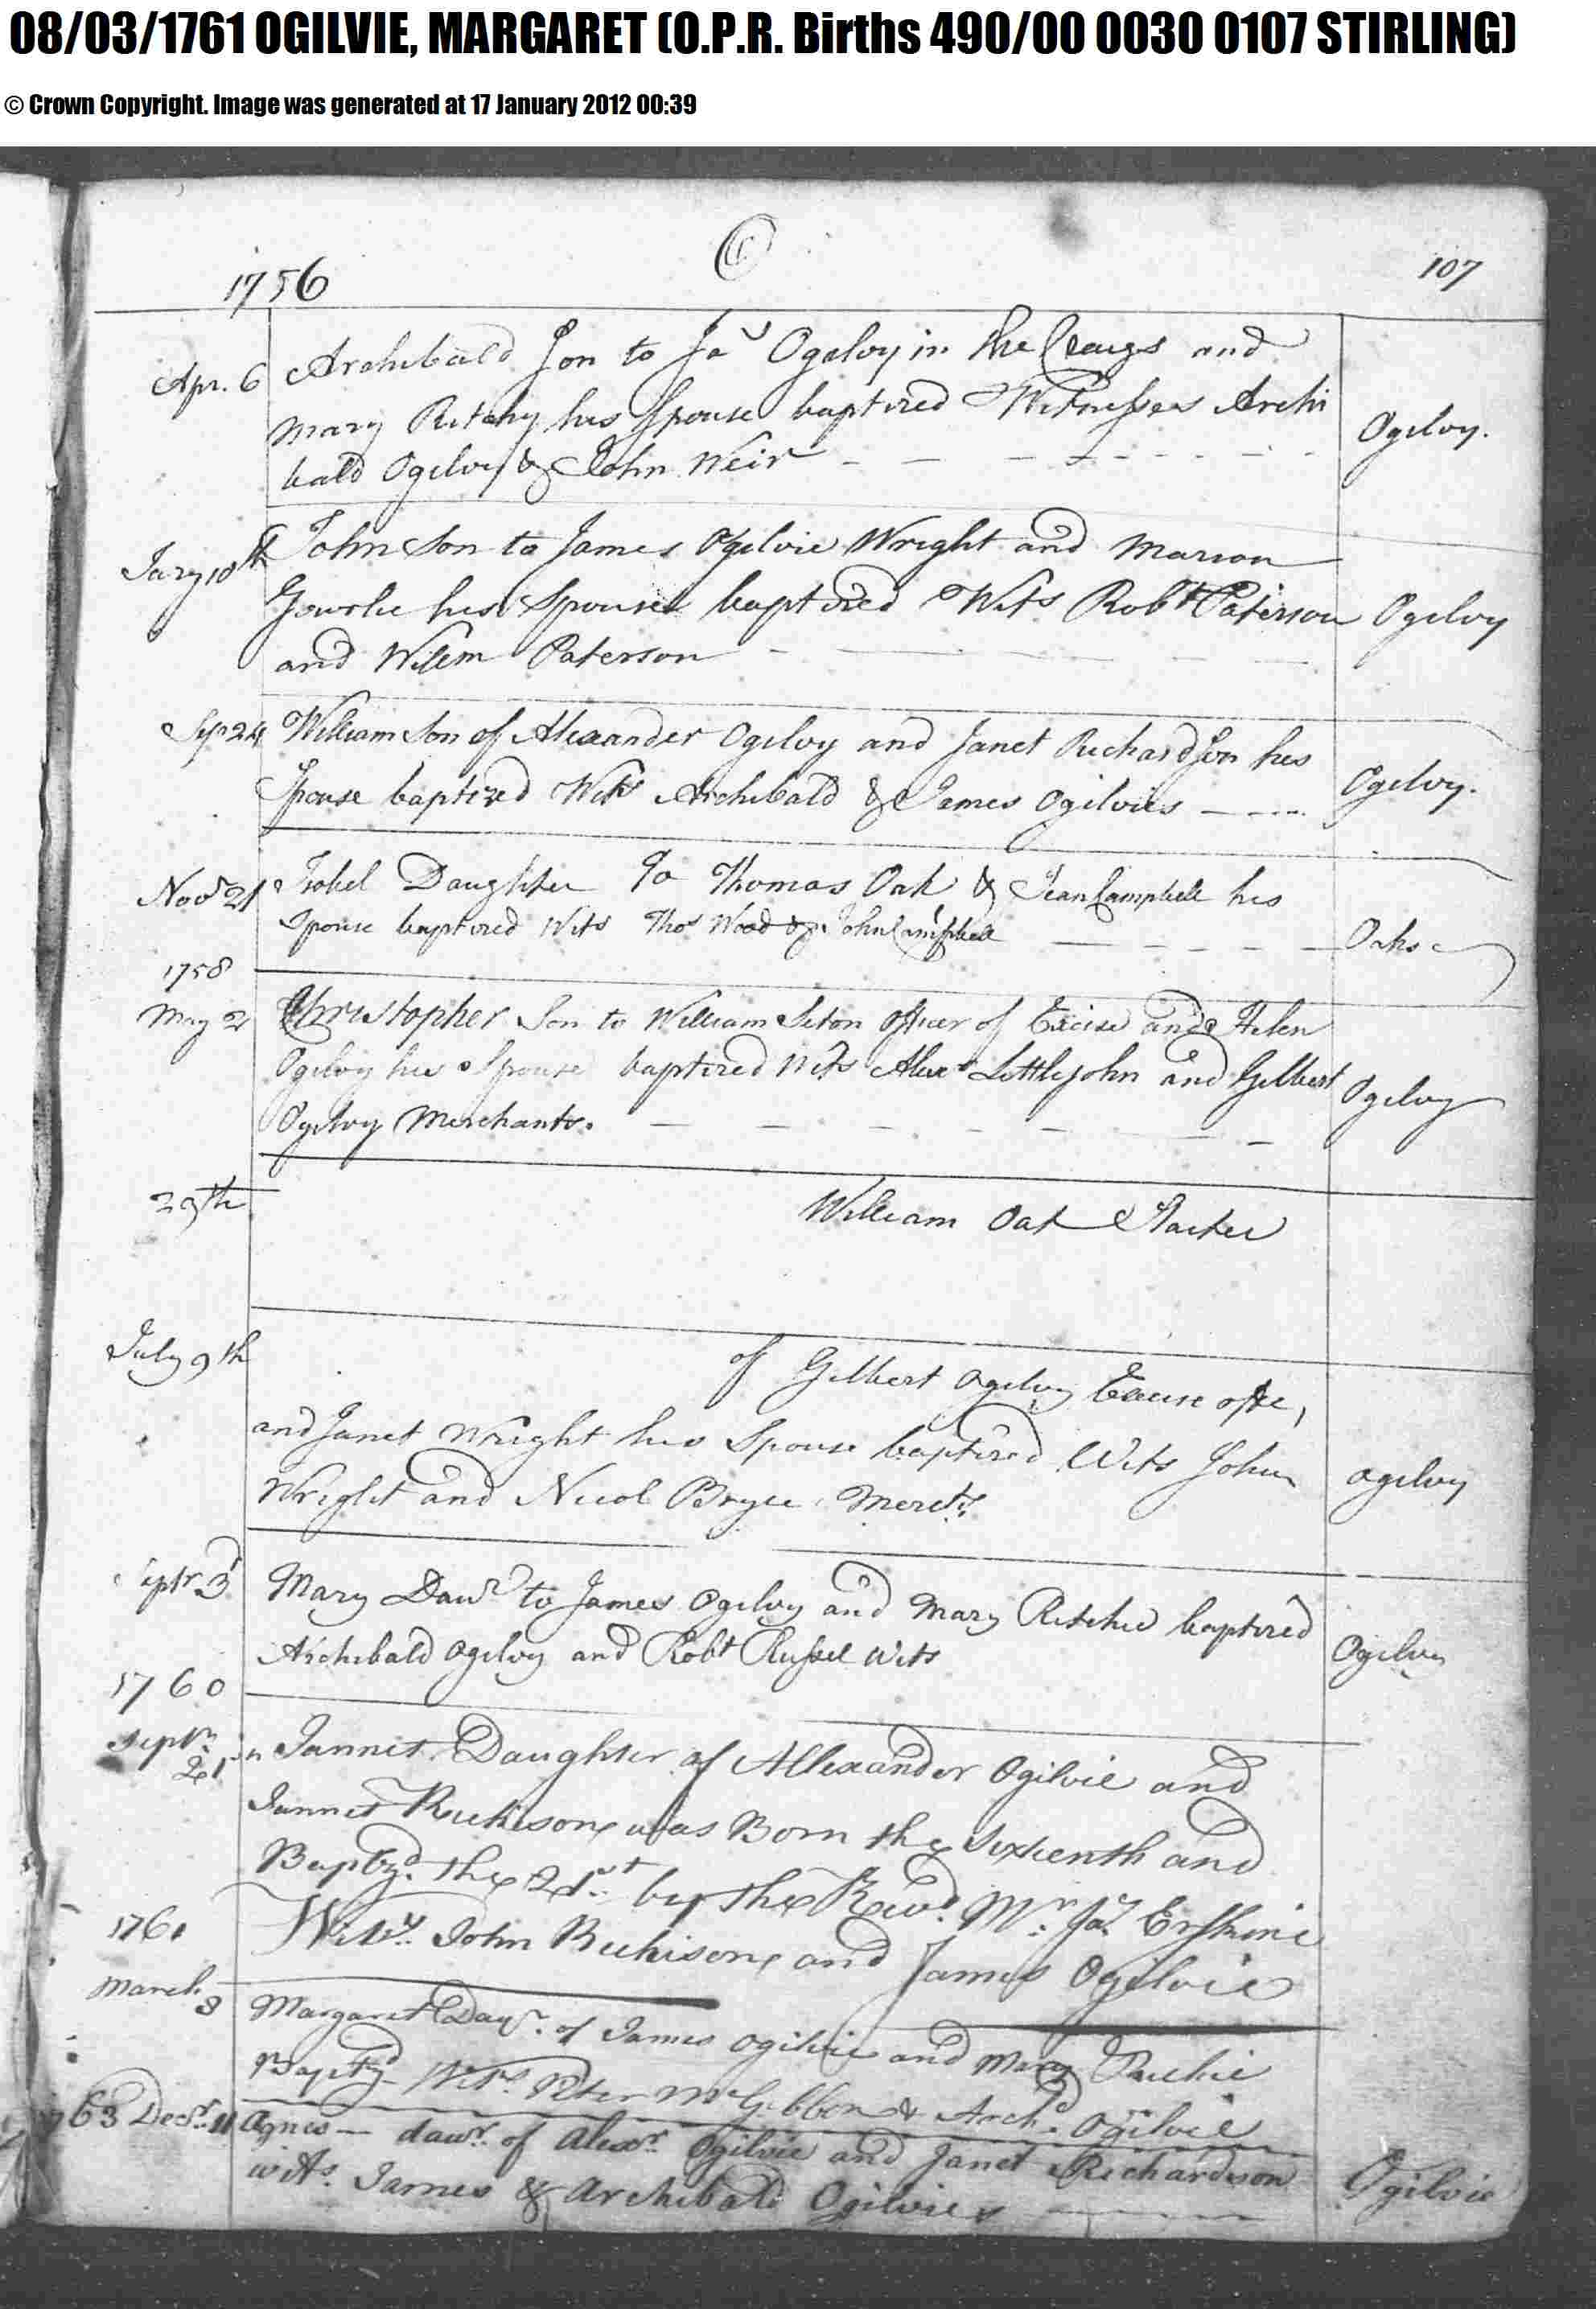 Birth certificate genealogy and jure sanguinis birth record 8 mar 1761 for margaret ogilvie to james ogilvie and mary richie aiddatafo Image collections